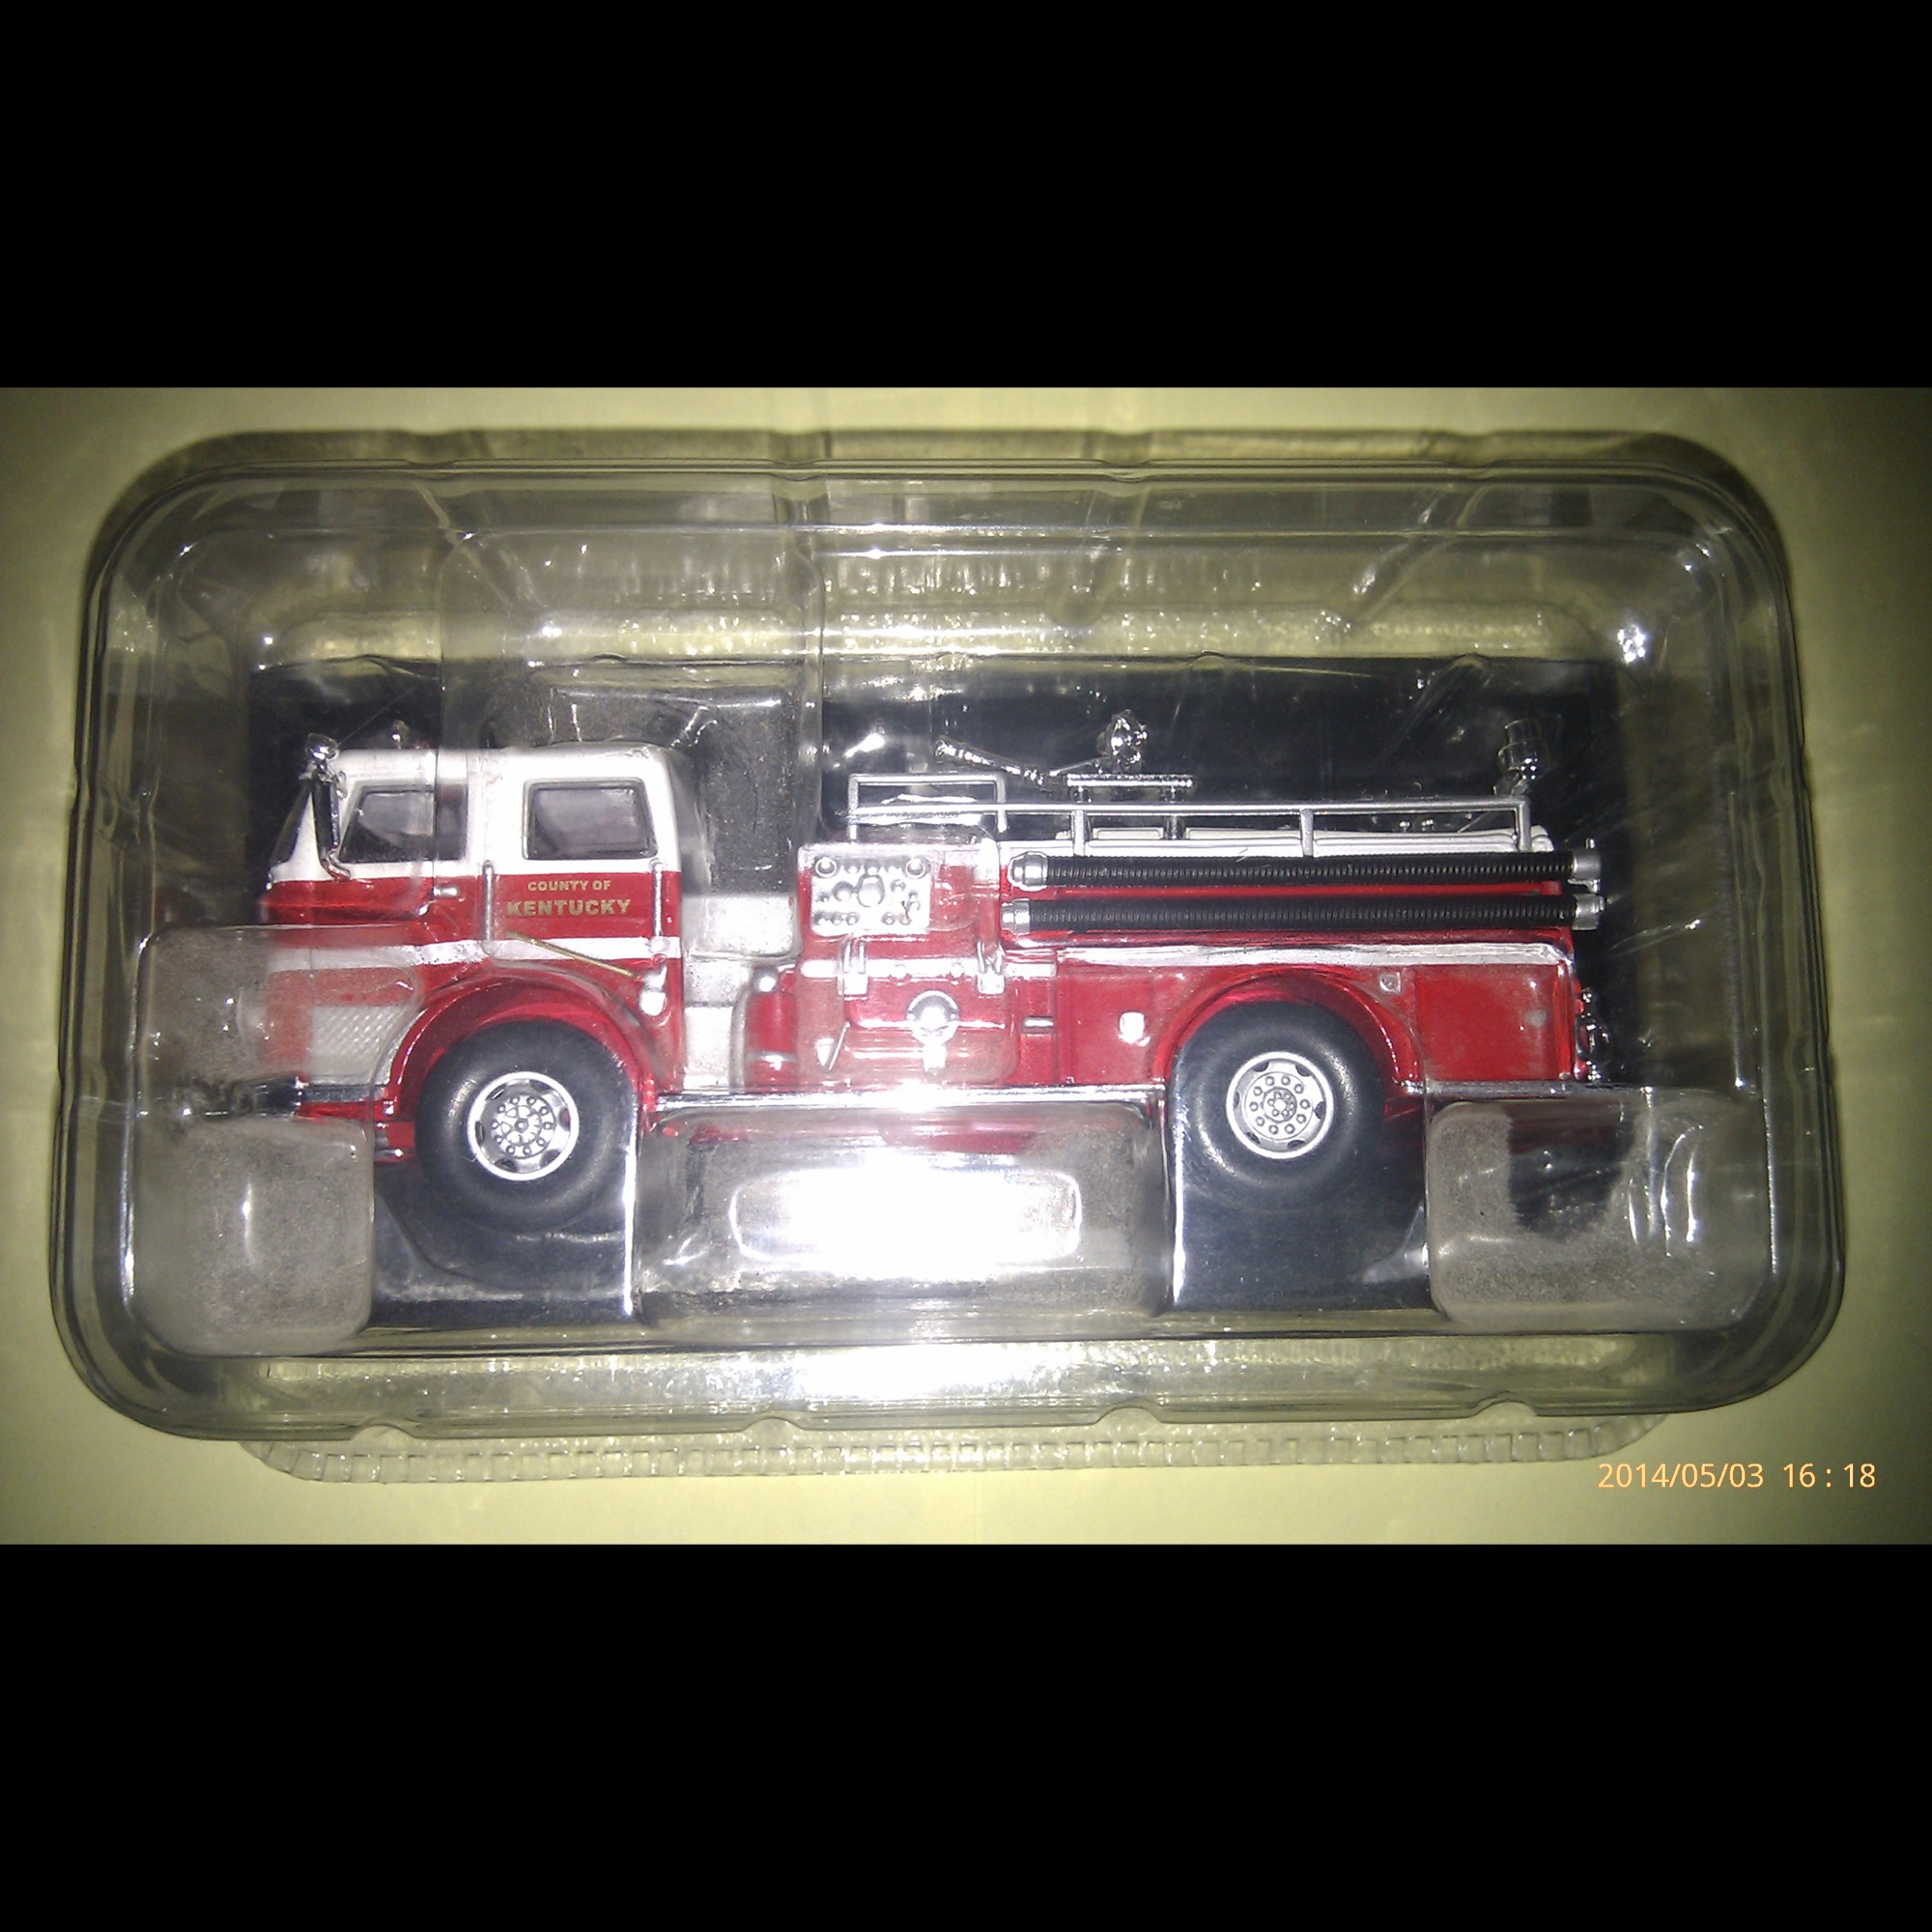 1:64 Scale - Seagrave K-Type Pumper